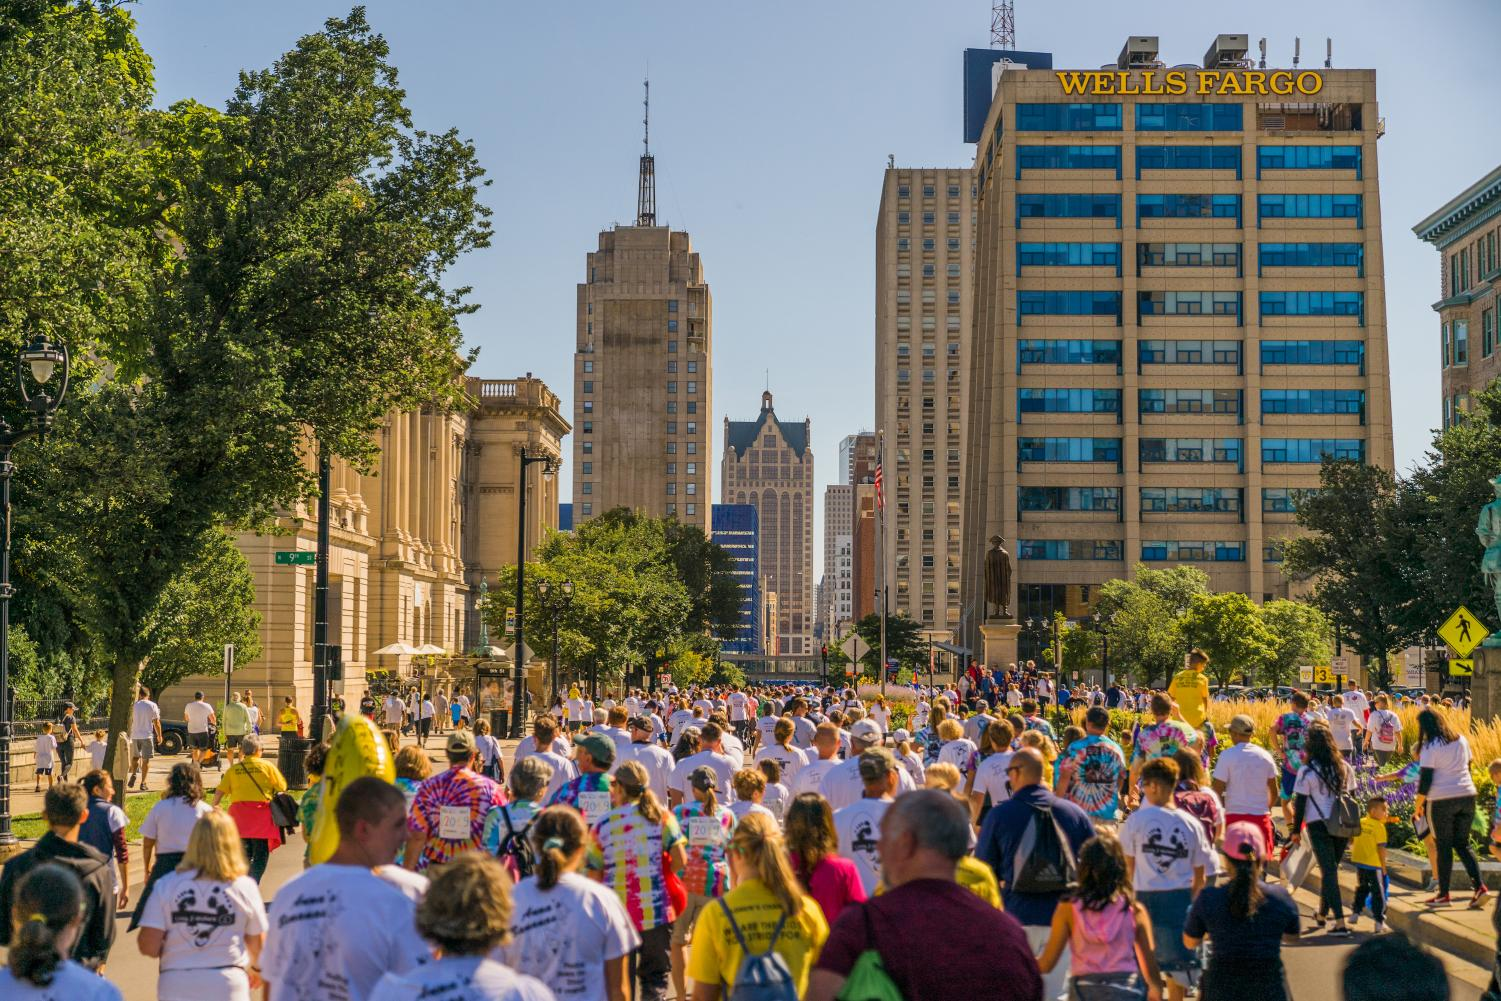 Runners gathered on Wisconsin Ave. for the Al & Briggs Run.